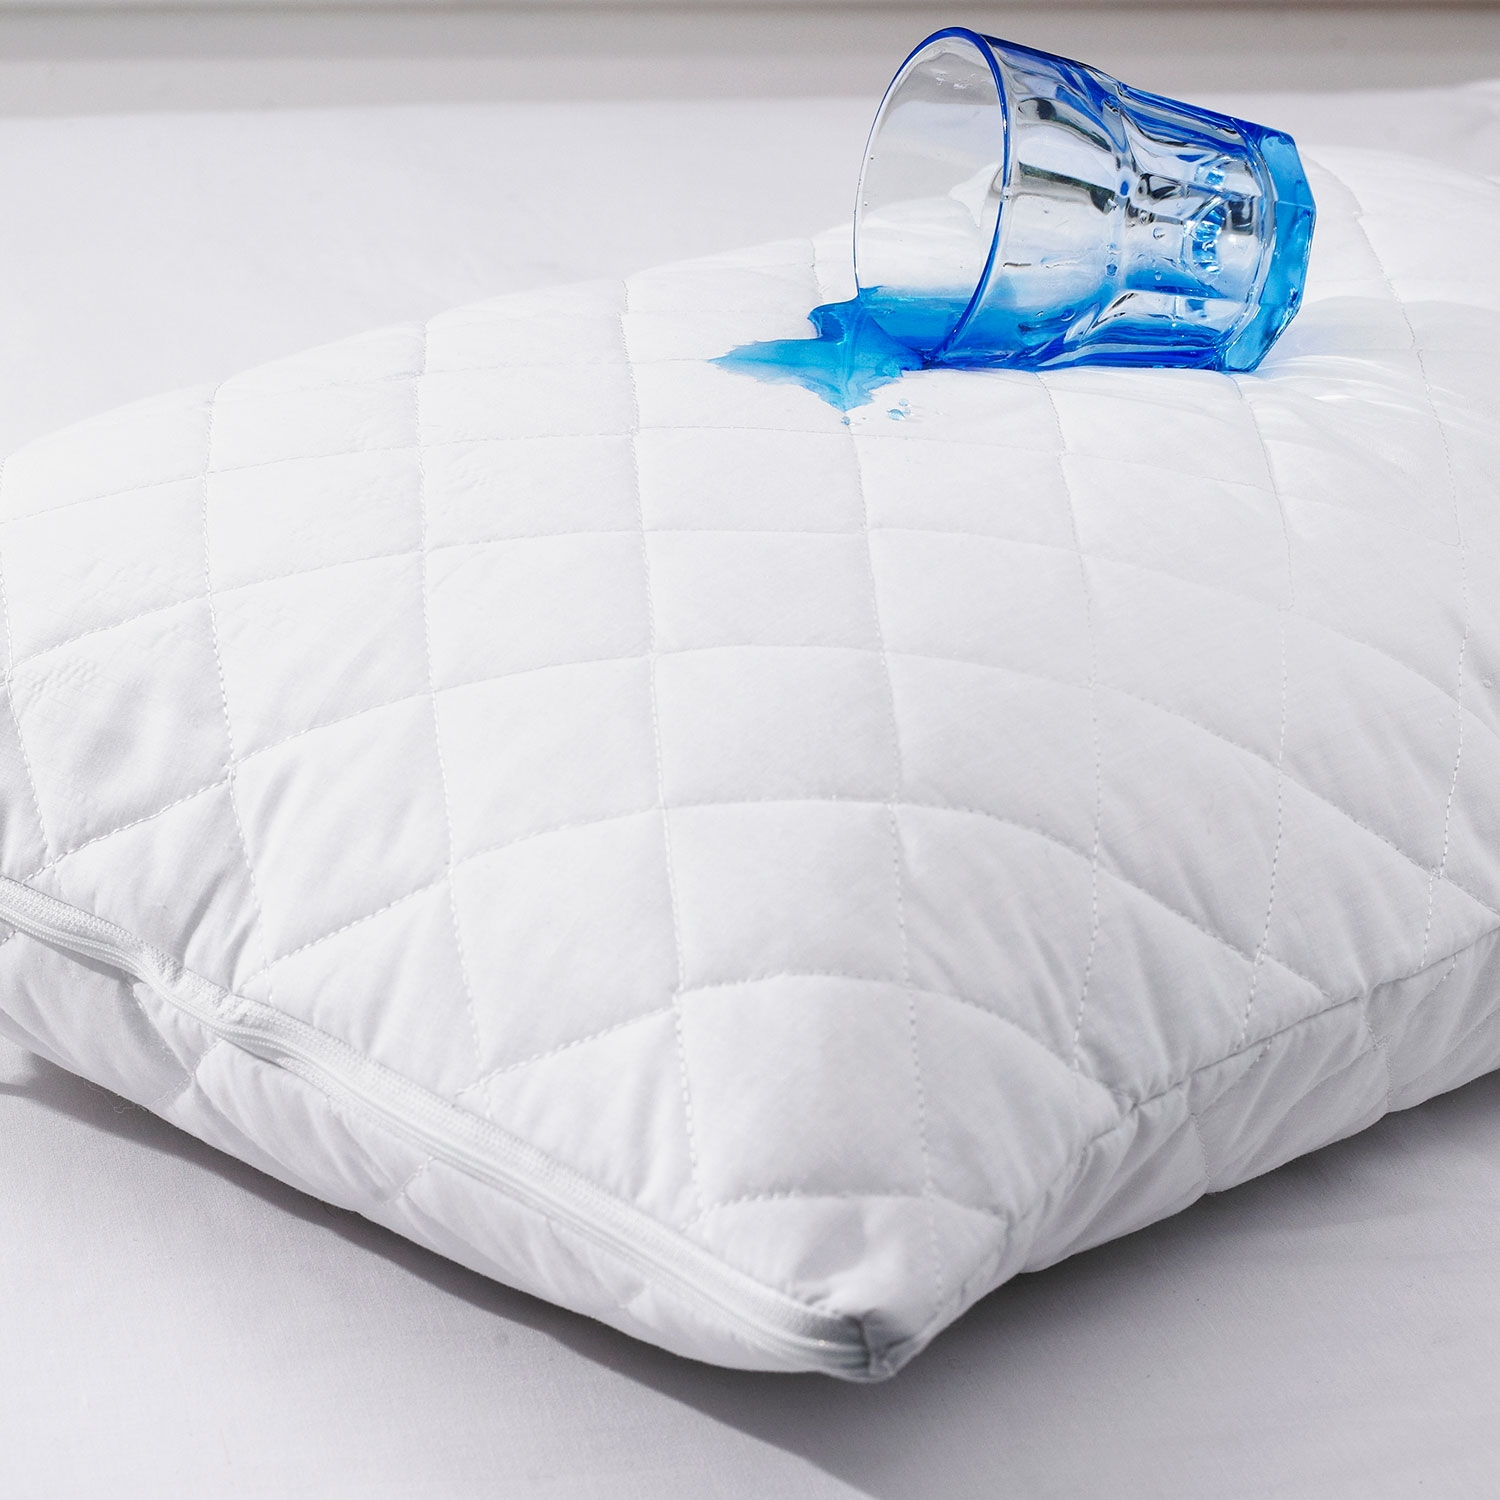 Quilted-Pillow-protector-waterproof-_2_.jpg